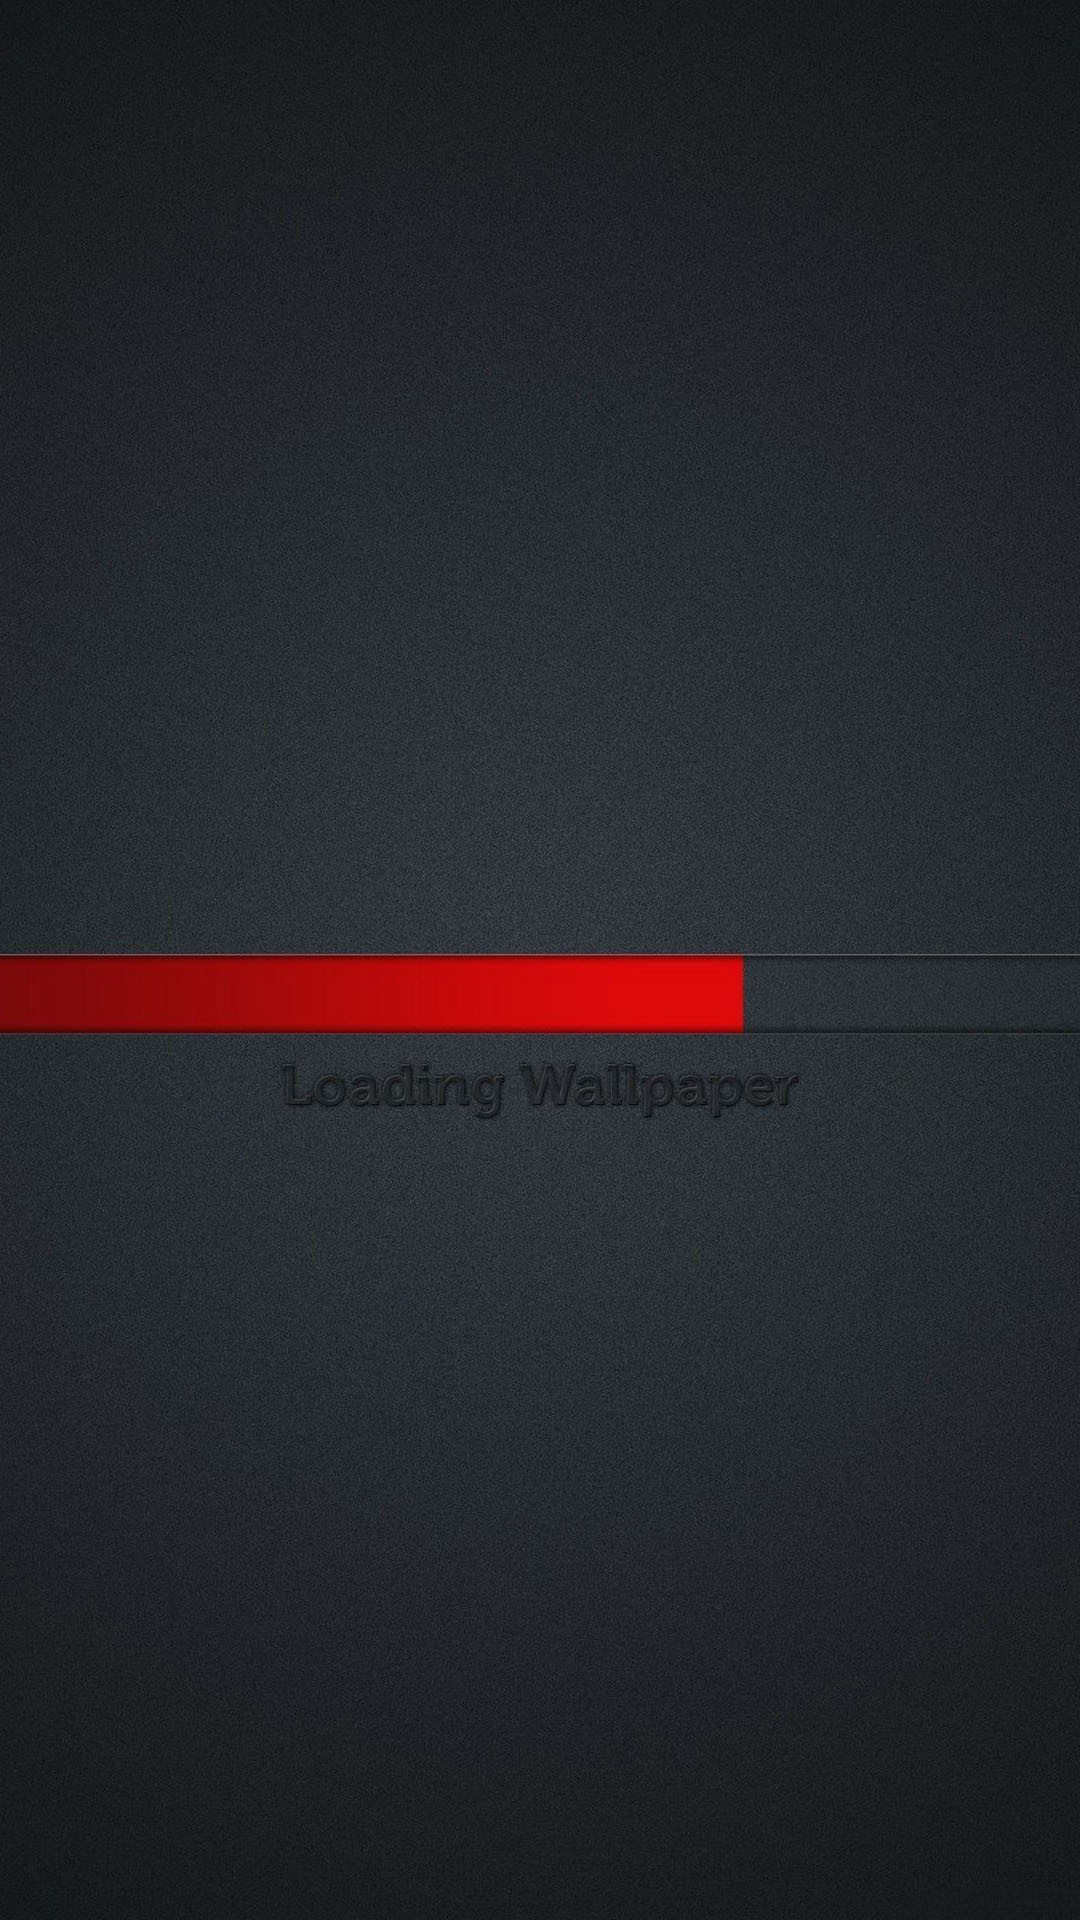 Loading Wallpaper Red Line Grey Background Android Wallpaper …